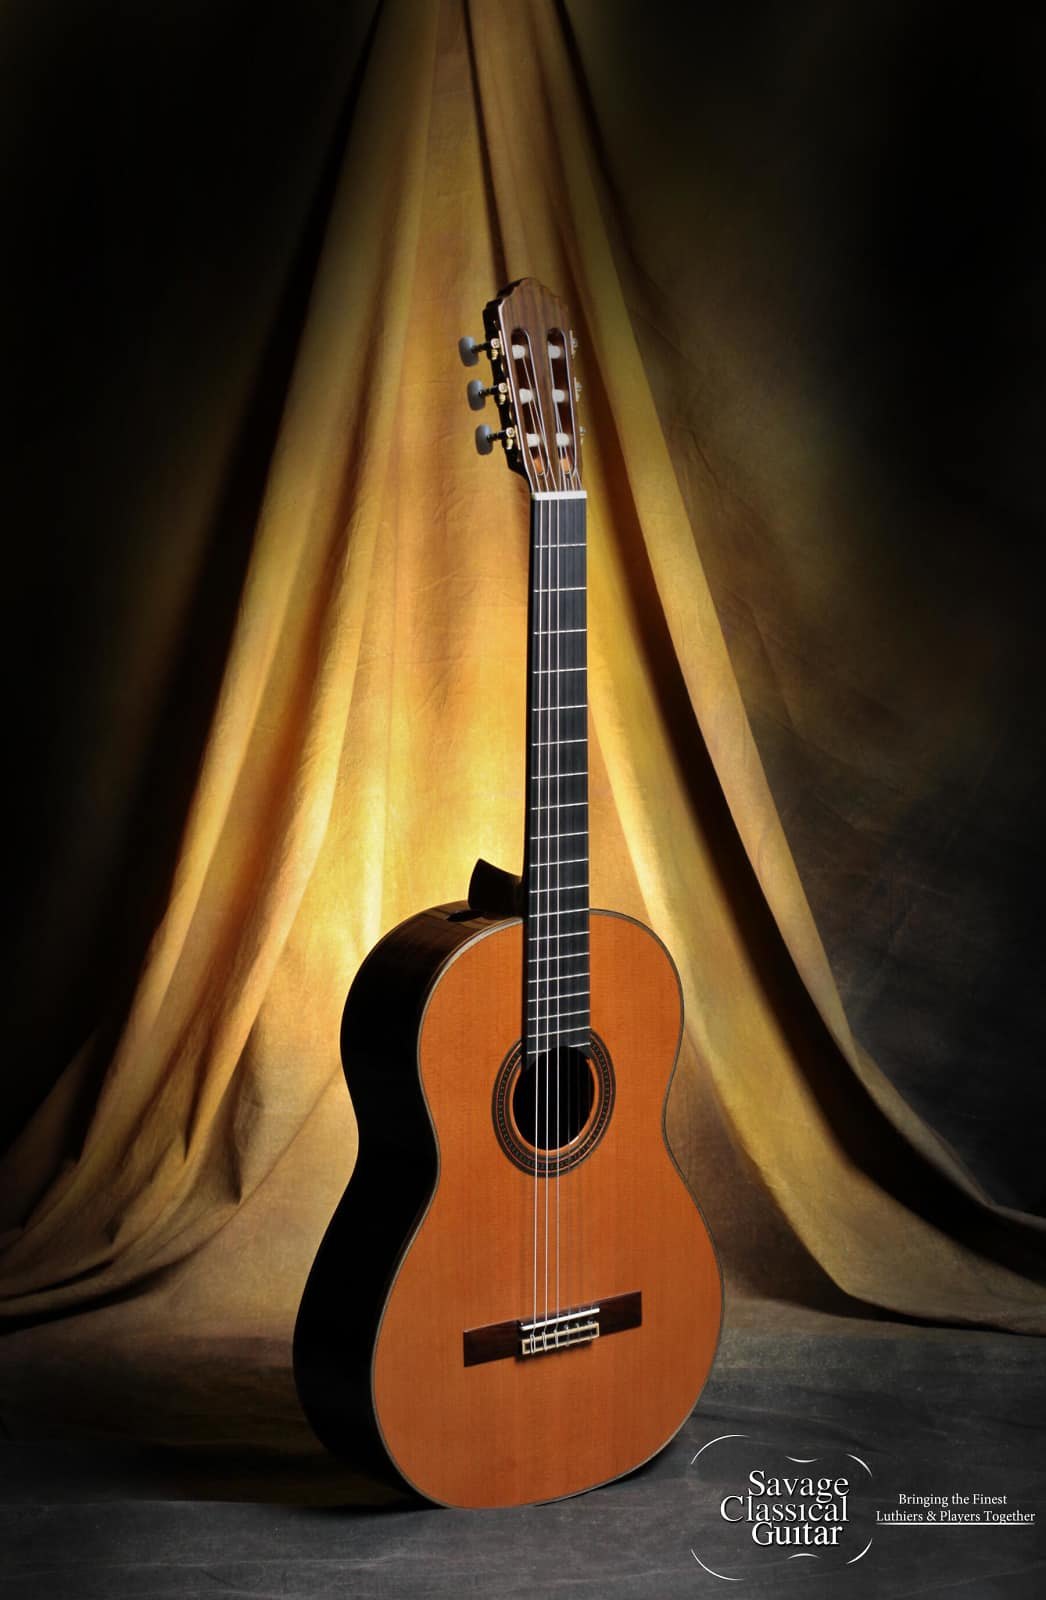 kenny hill player classical guitar 640mm with ports cedar reverb. Black Bedroom Furniture Sets. Home Design Ideas